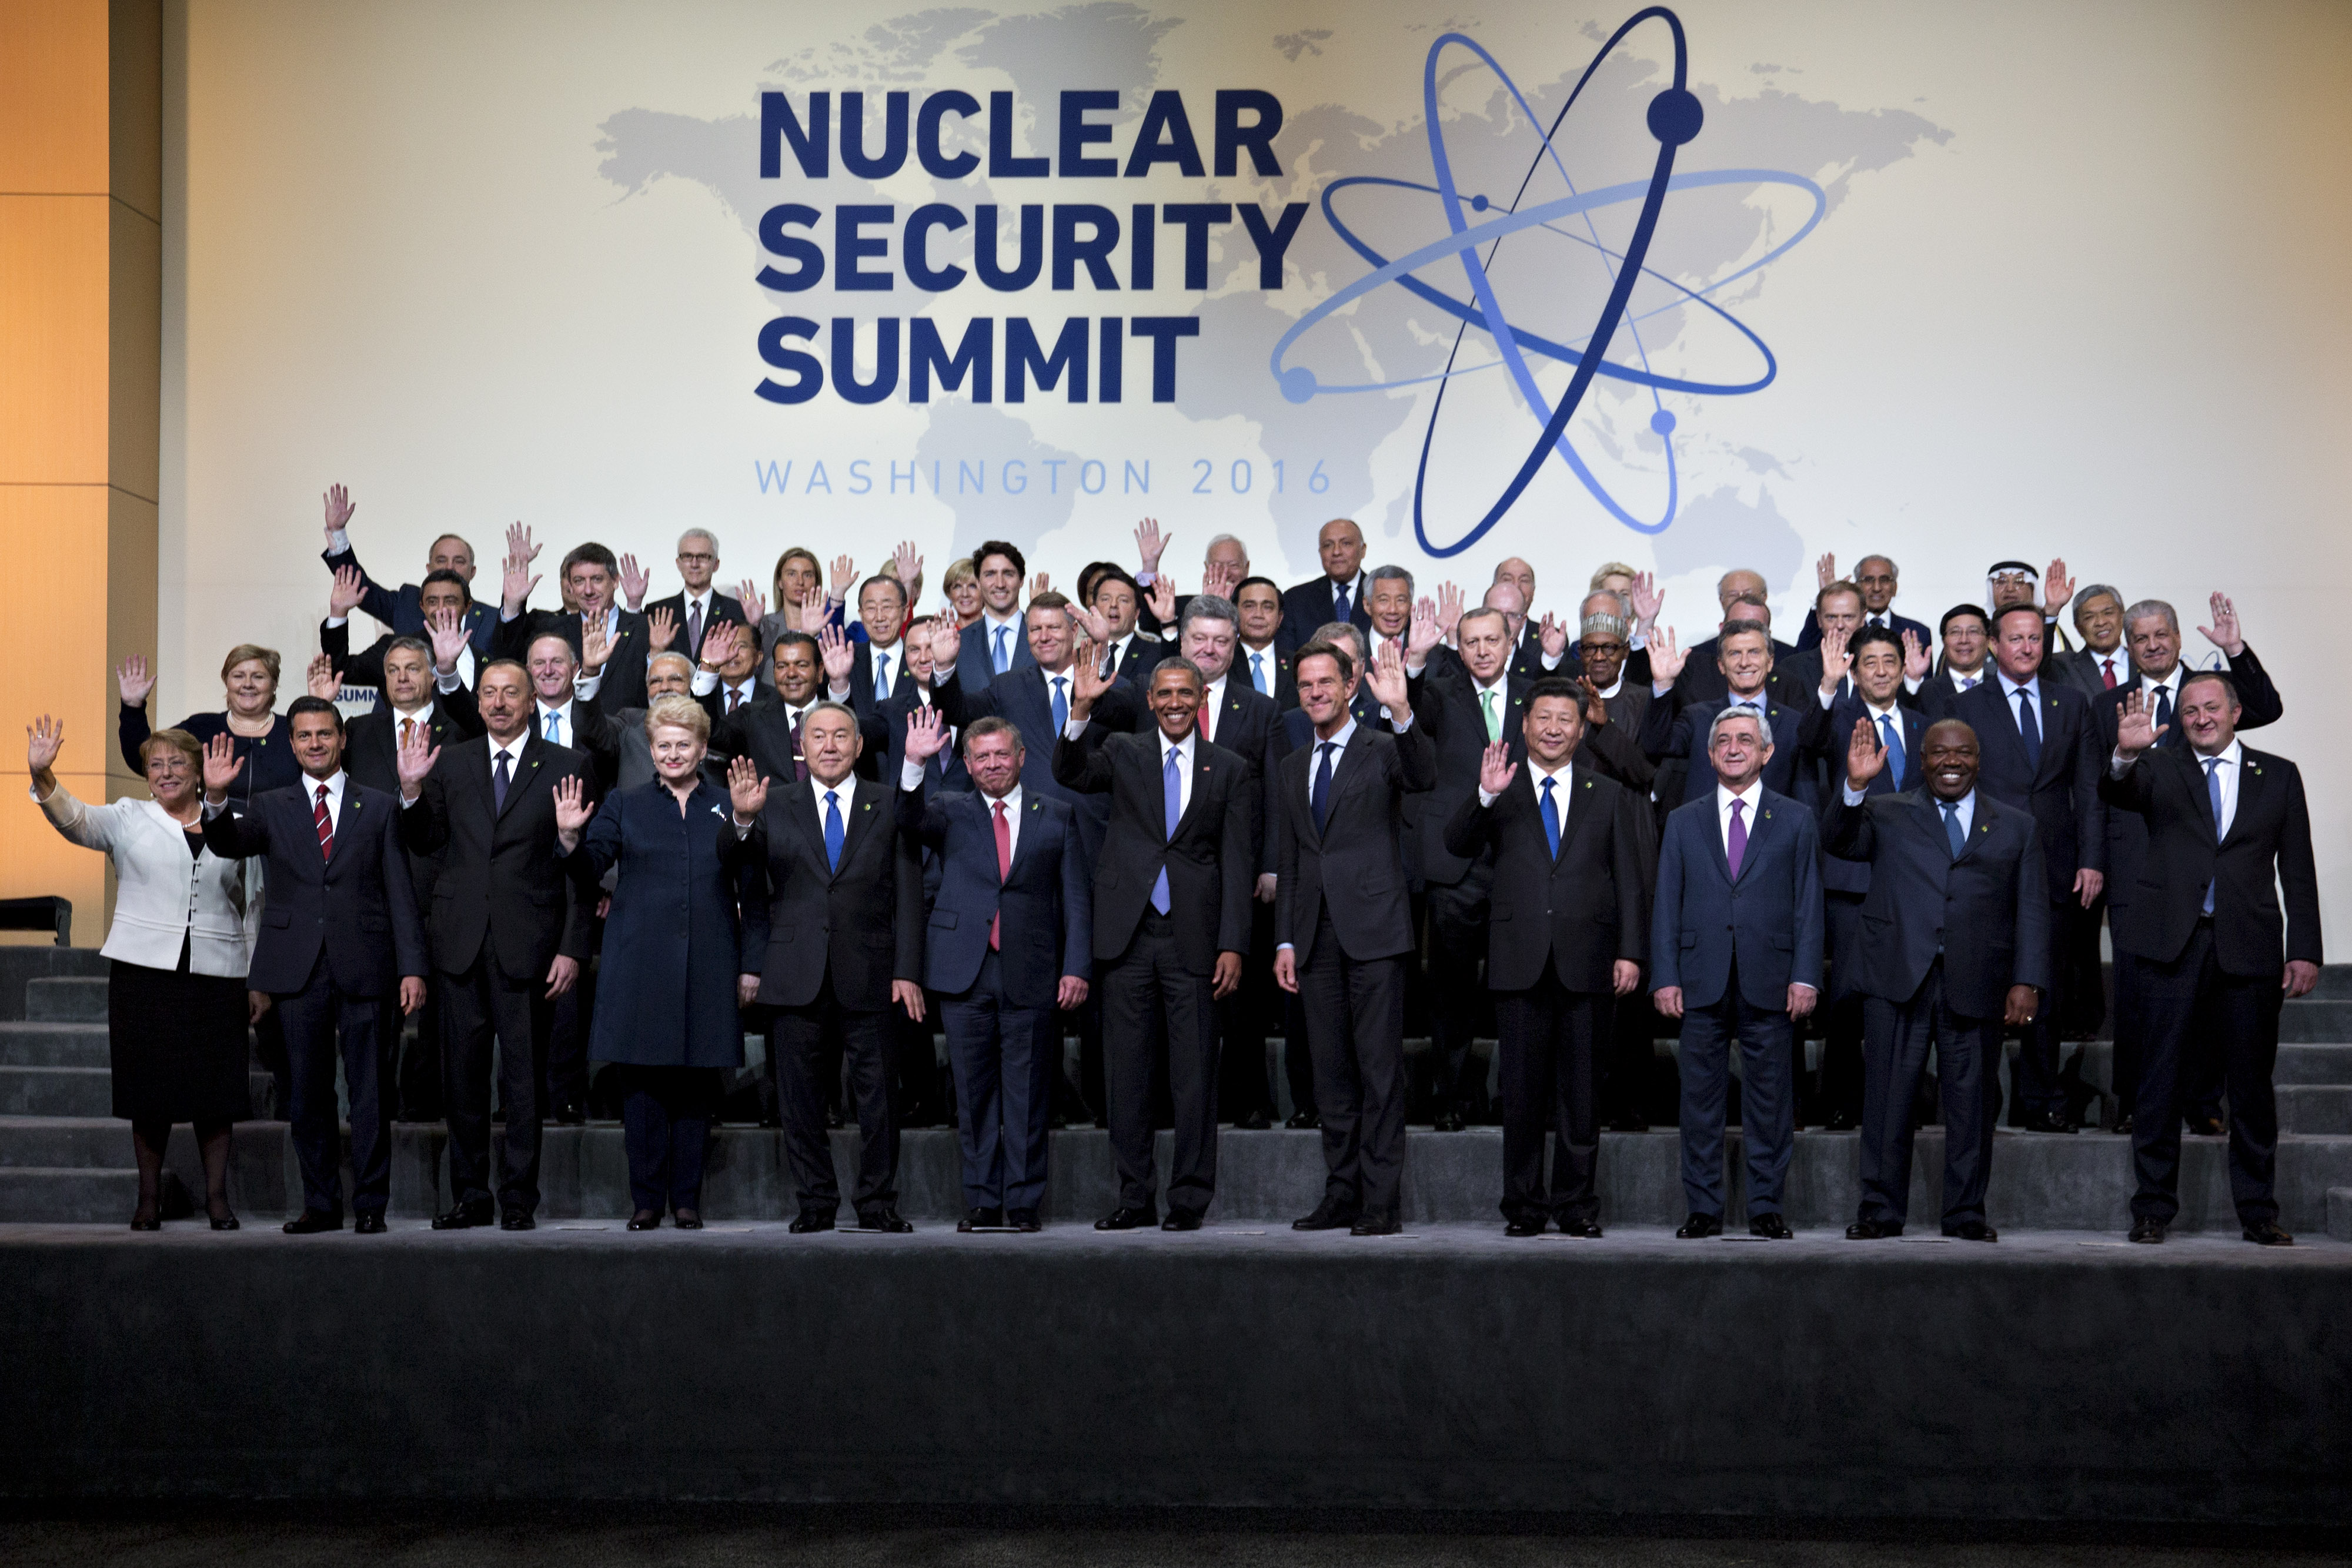 Long Nuclear Shadow Could Revive Calls for Abolition